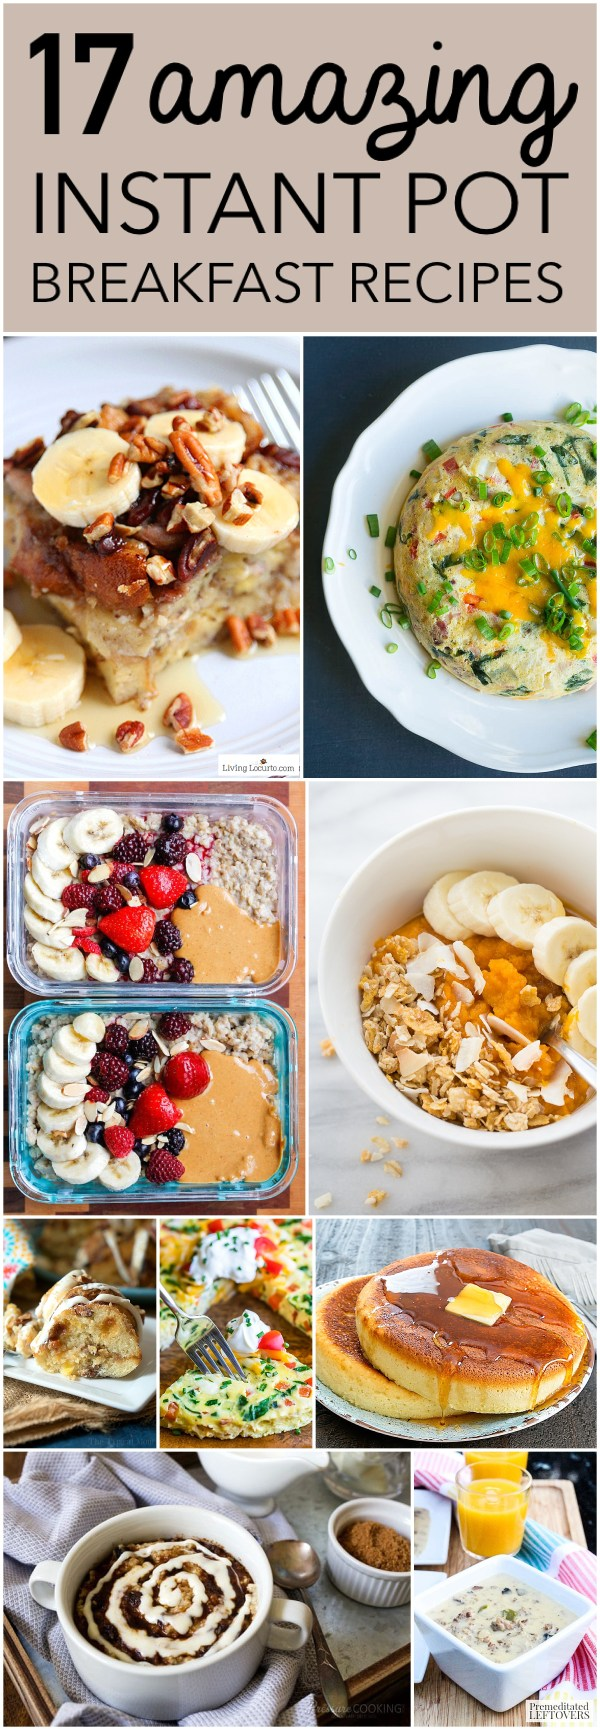 17 Awesome Breakfasts To Make In Your Instant Pot Six Clever Sisters